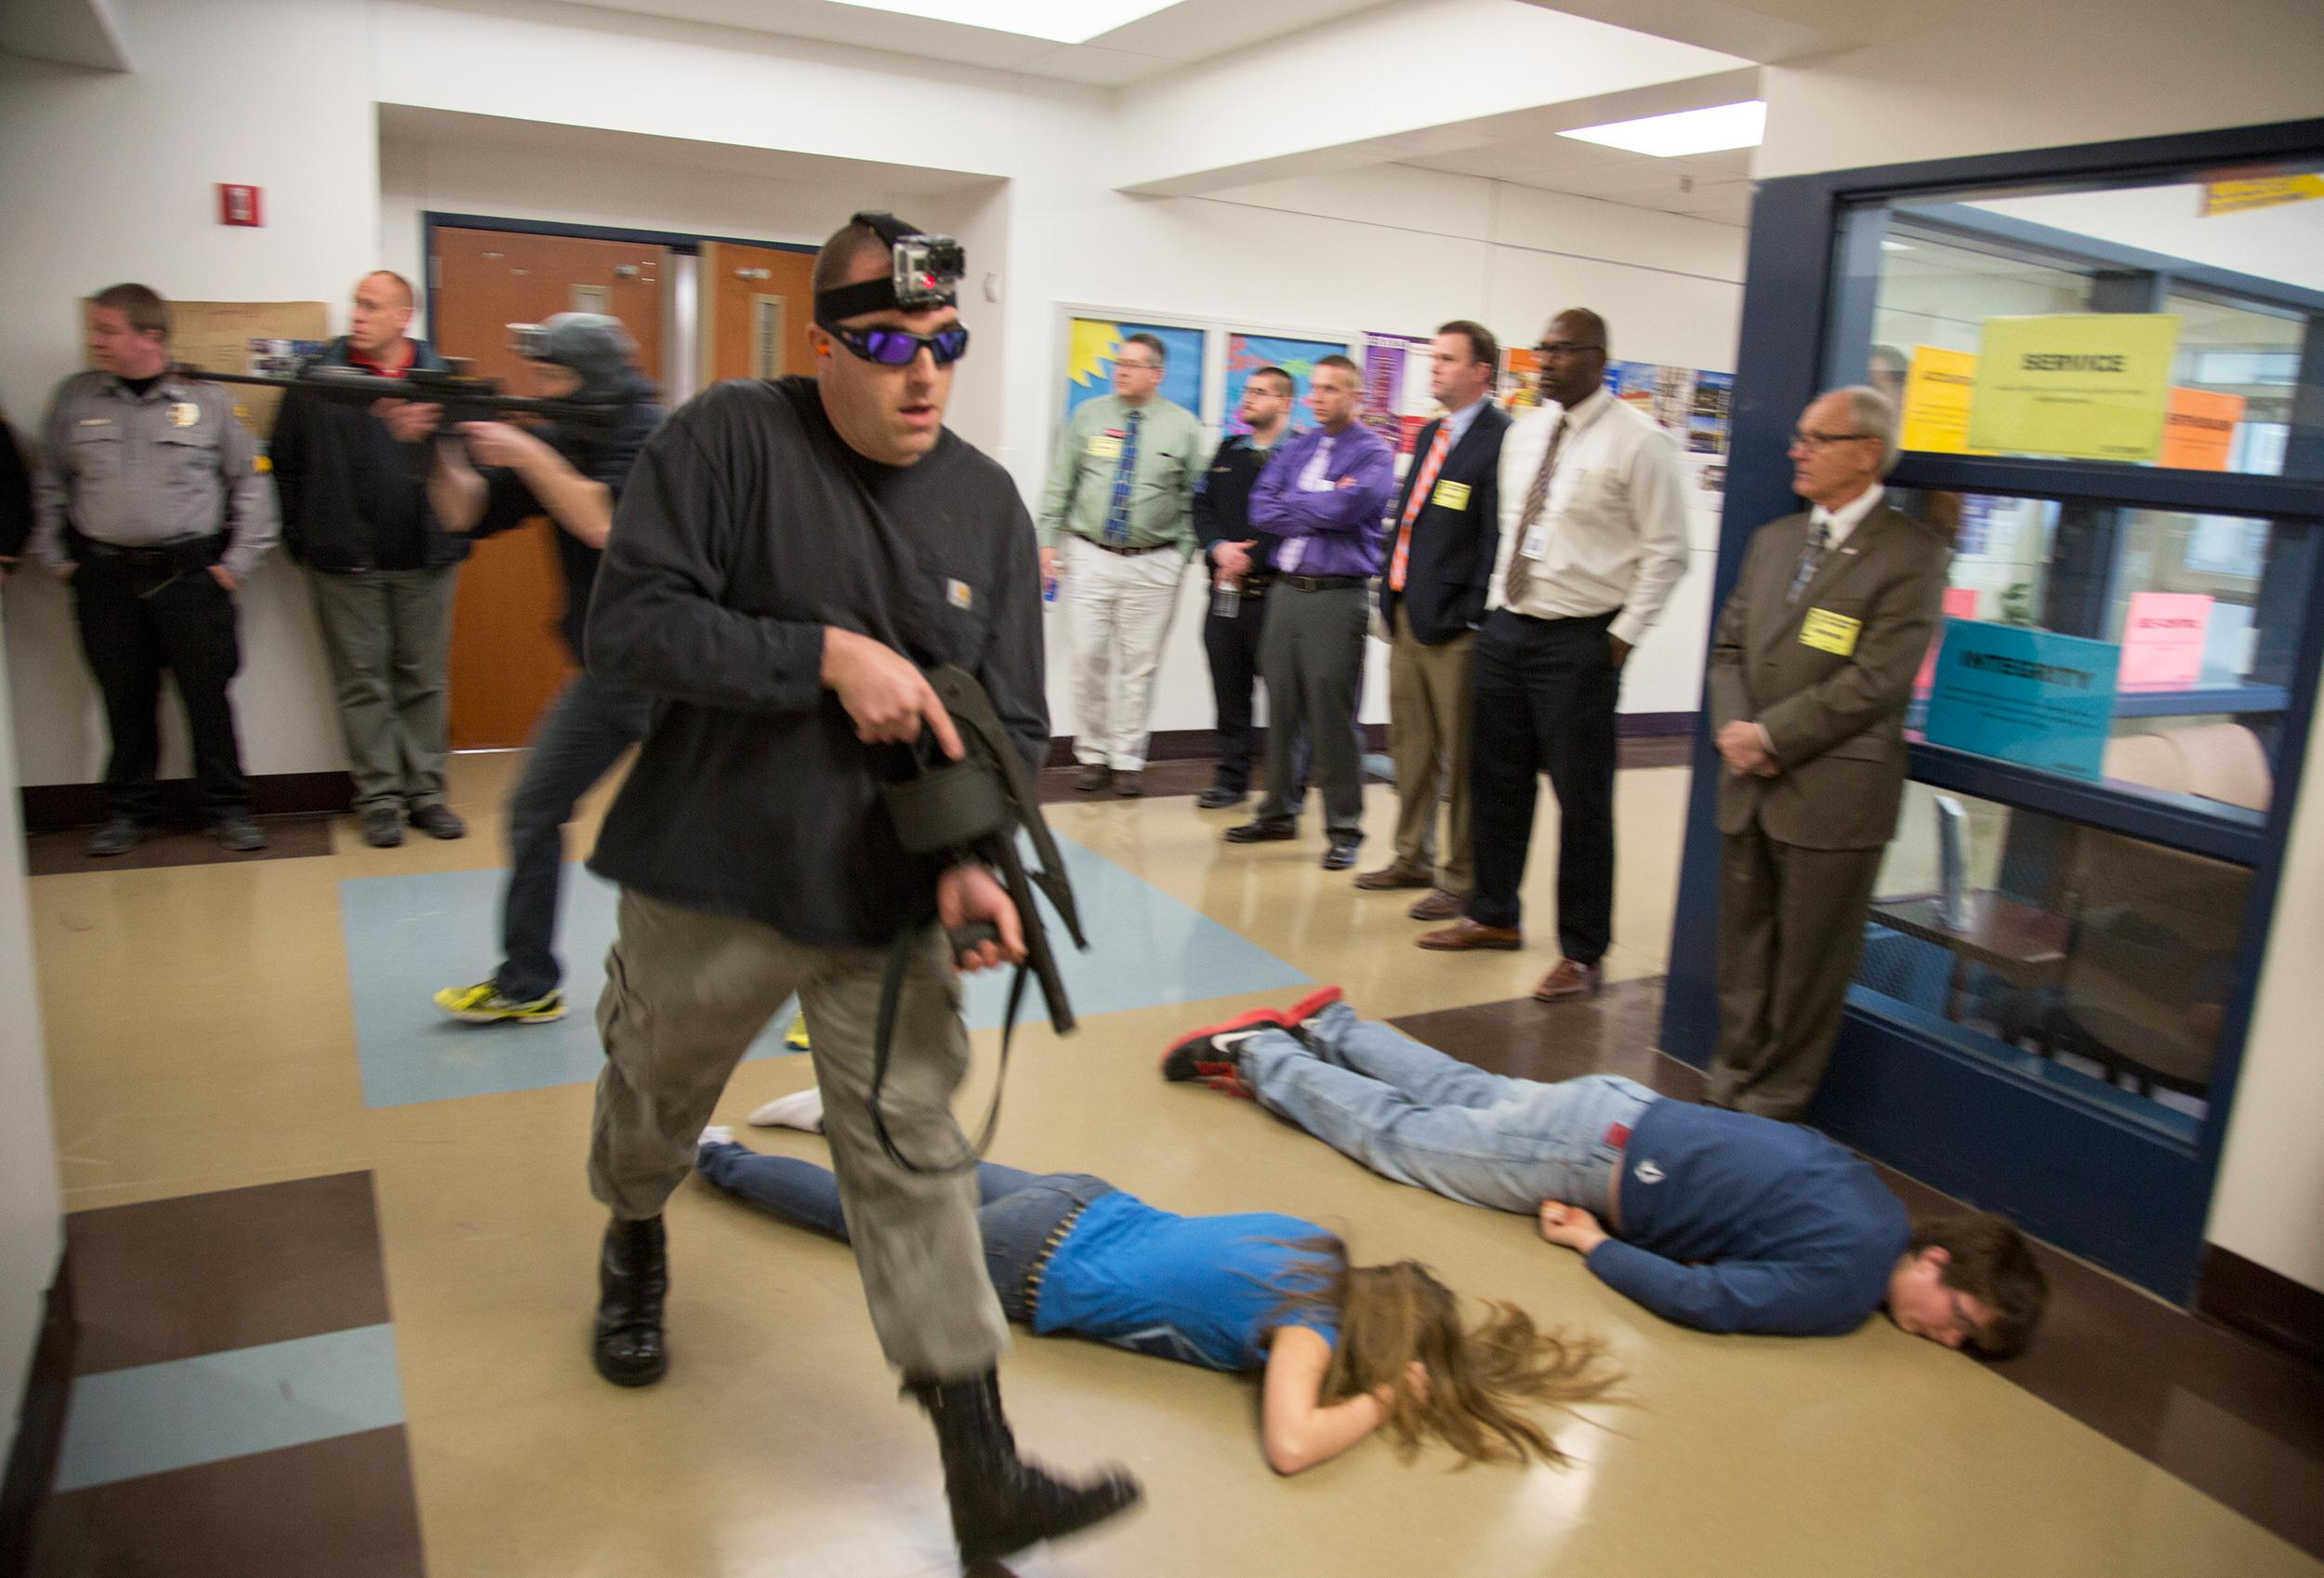 Fake Blood And Blanks Schools Stage Active Shooter Drills